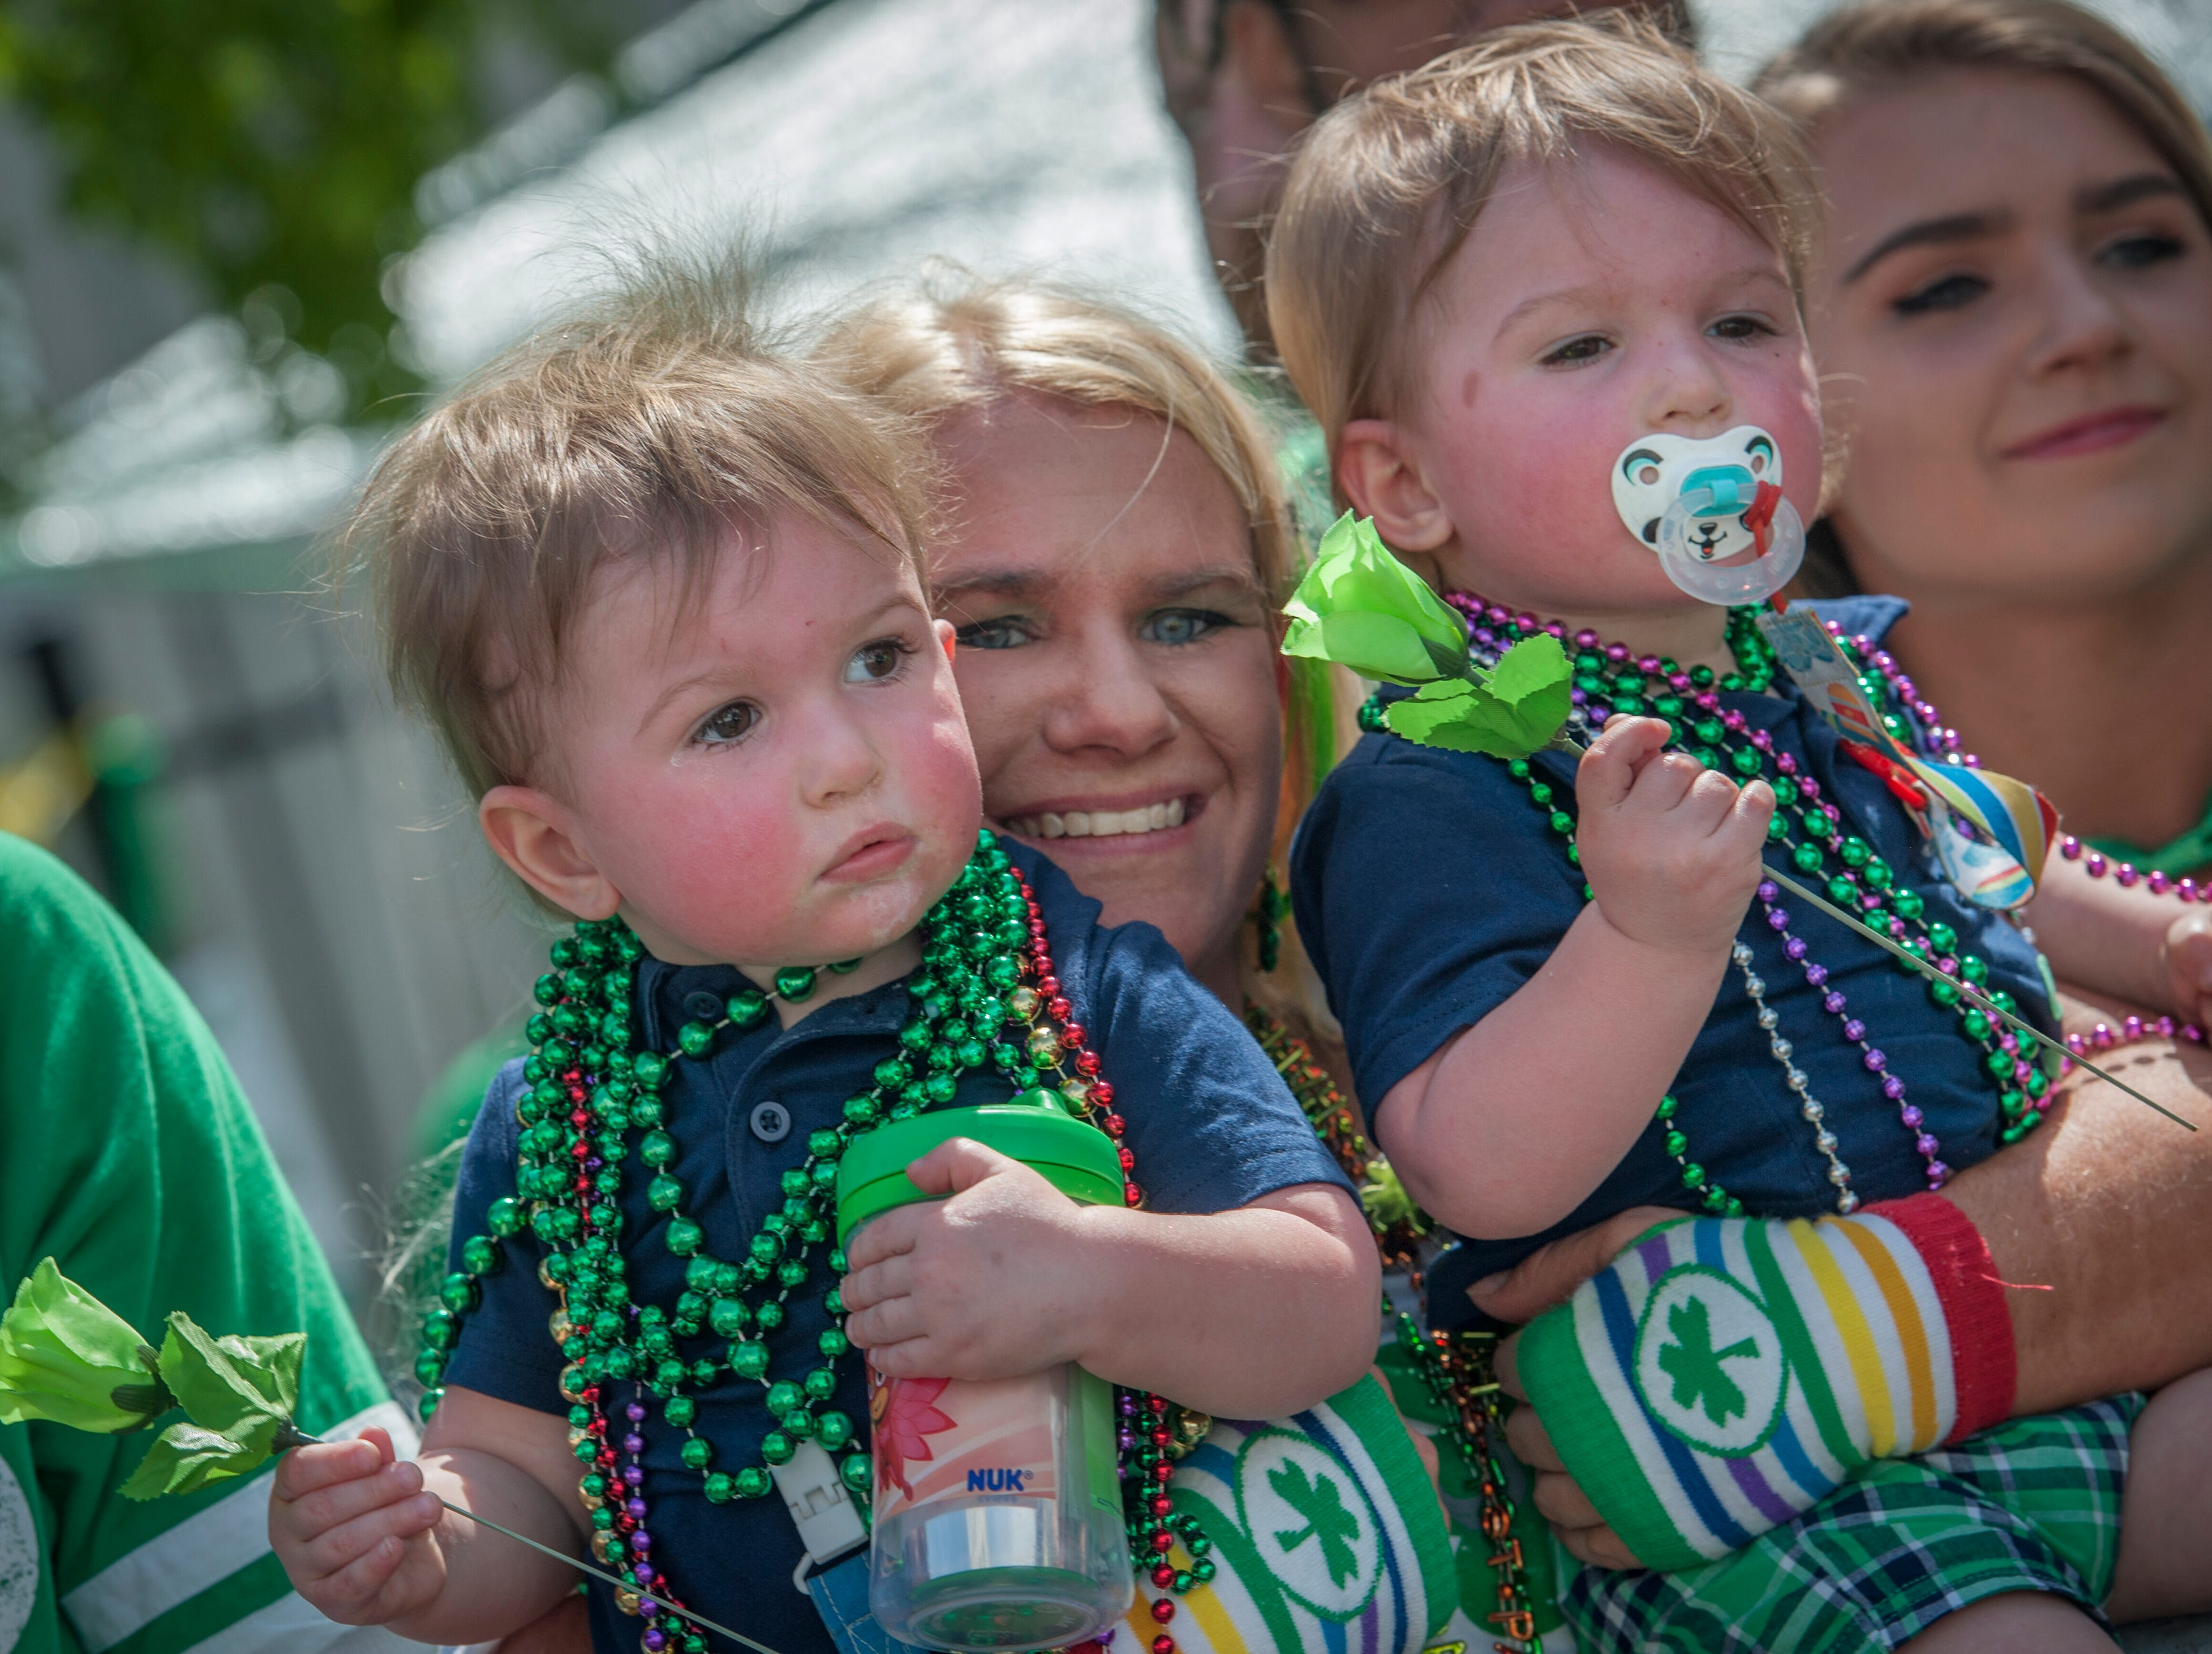 Amber Quick of Brandon, with Lucas, left, and Gage, right, enjoys the experience of her identical 1-year-old twin sons' first parade during Hal's St. Paddy's Day Parade in Jackson, Saturday, March 23, 2019.